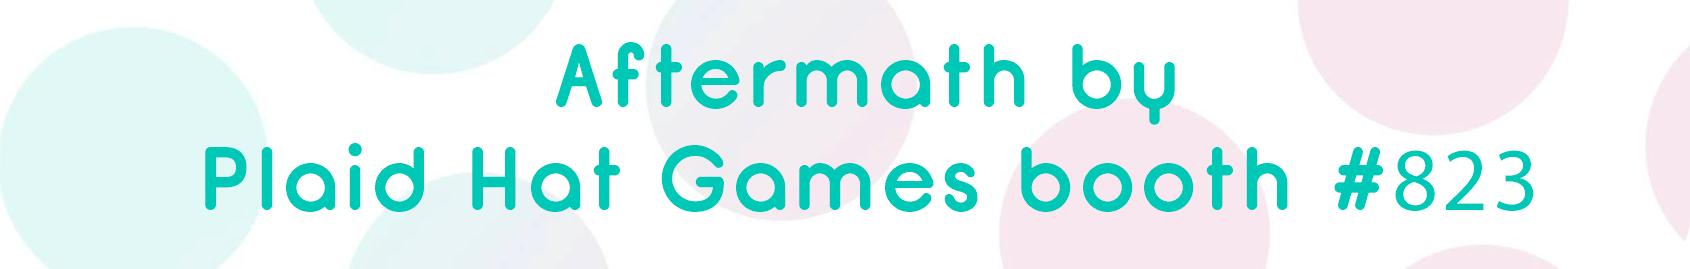 Aftermath by  Plaid Hat Games booth #823.png